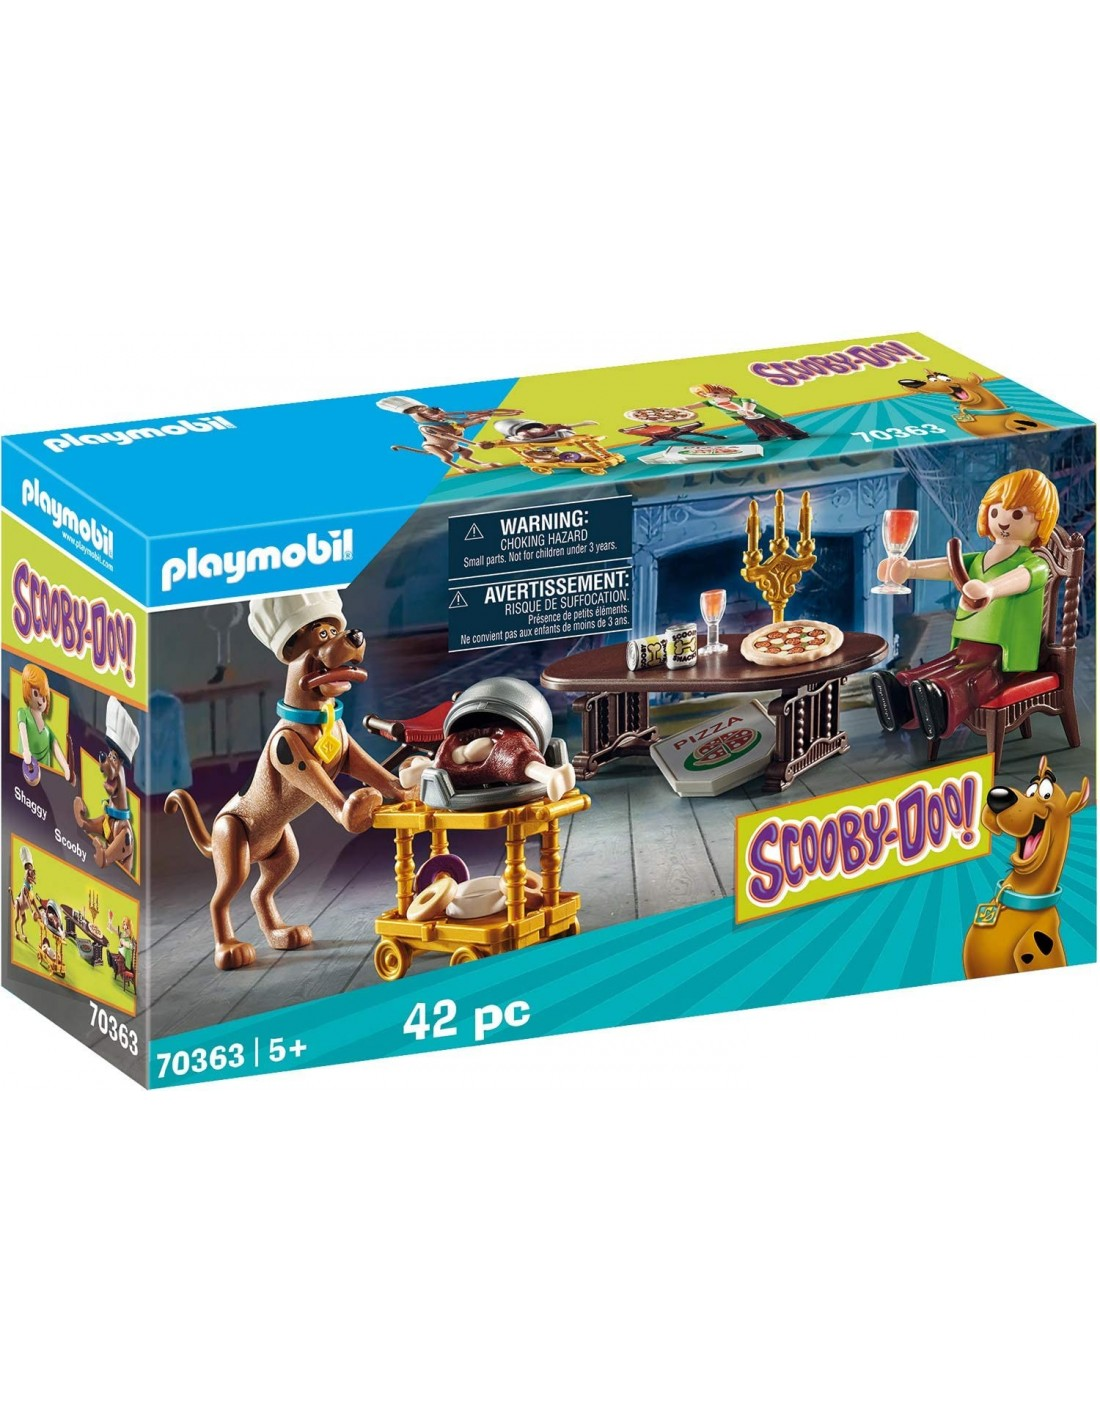 Playmobil – Scooby-Doo! Dinner with Shaggy